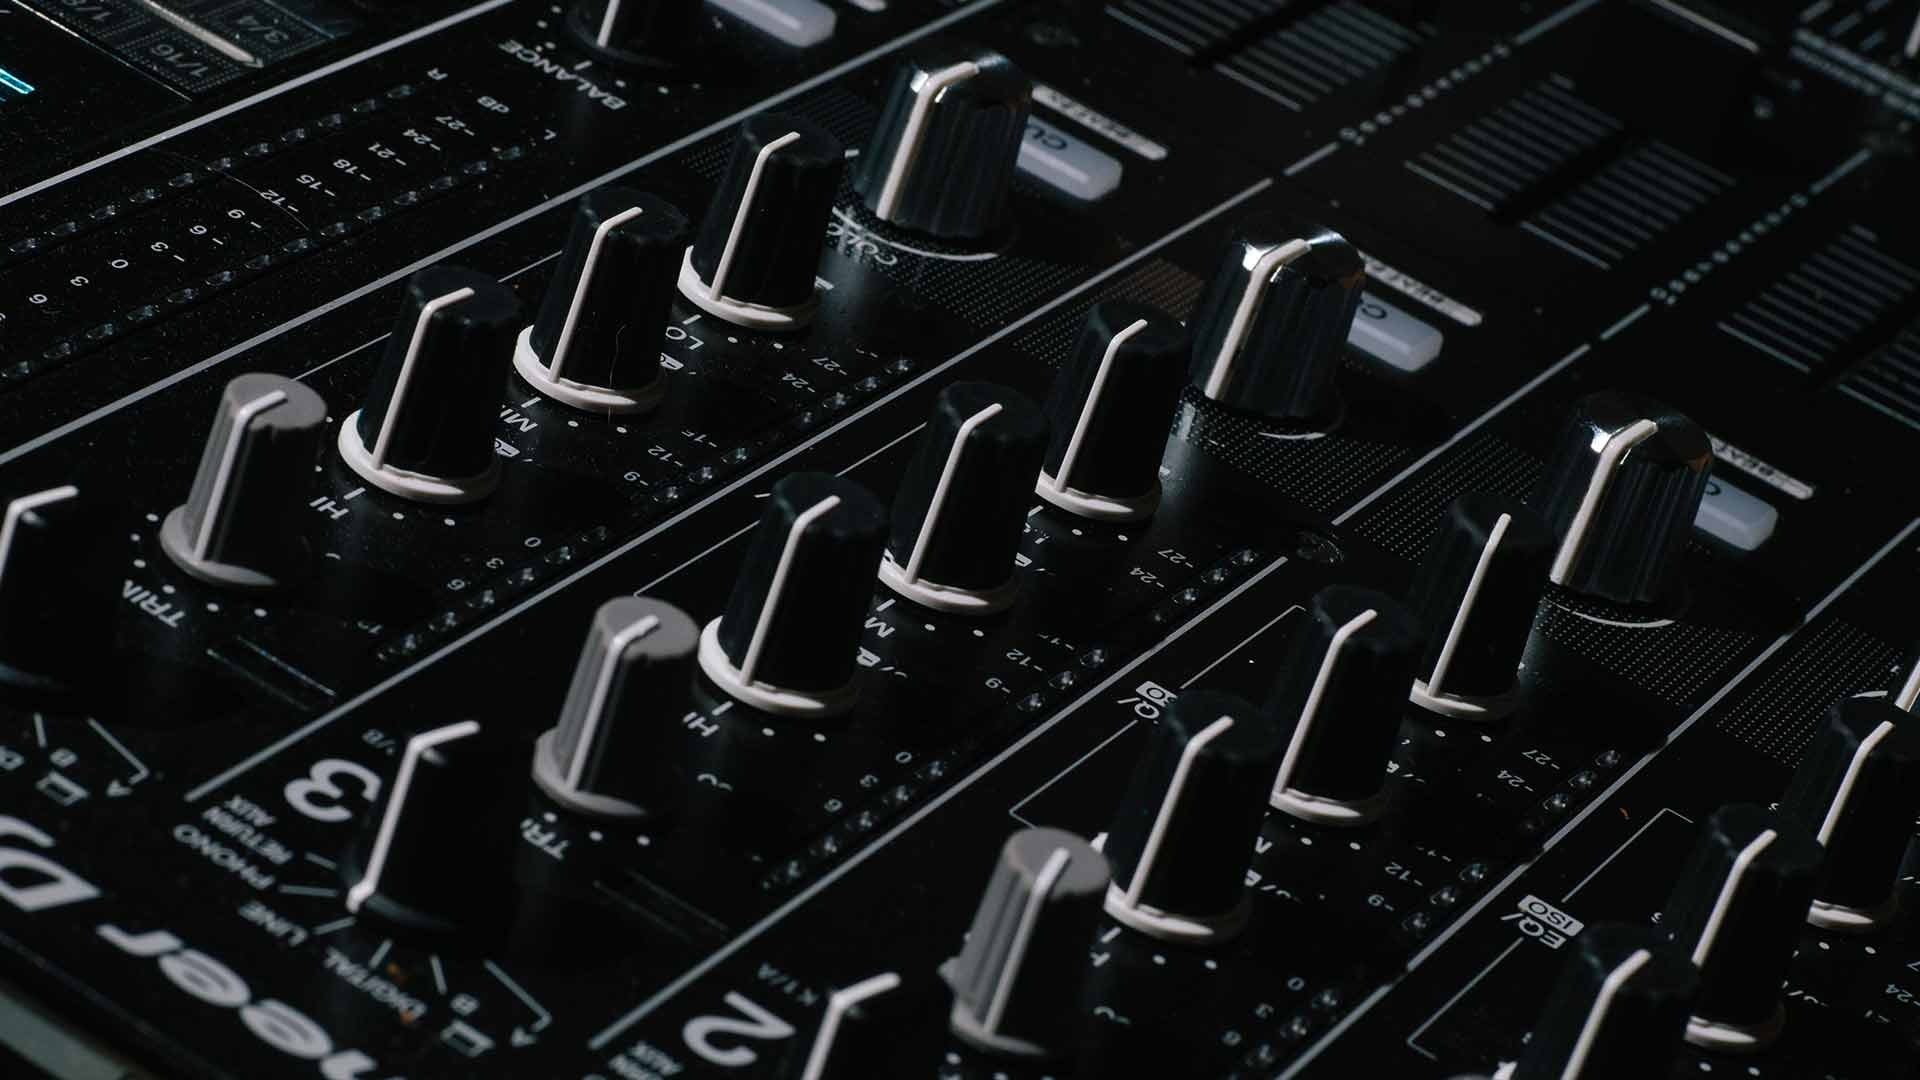 Close up of Pioneer DJ mixer used for free digital DJ academy lessons